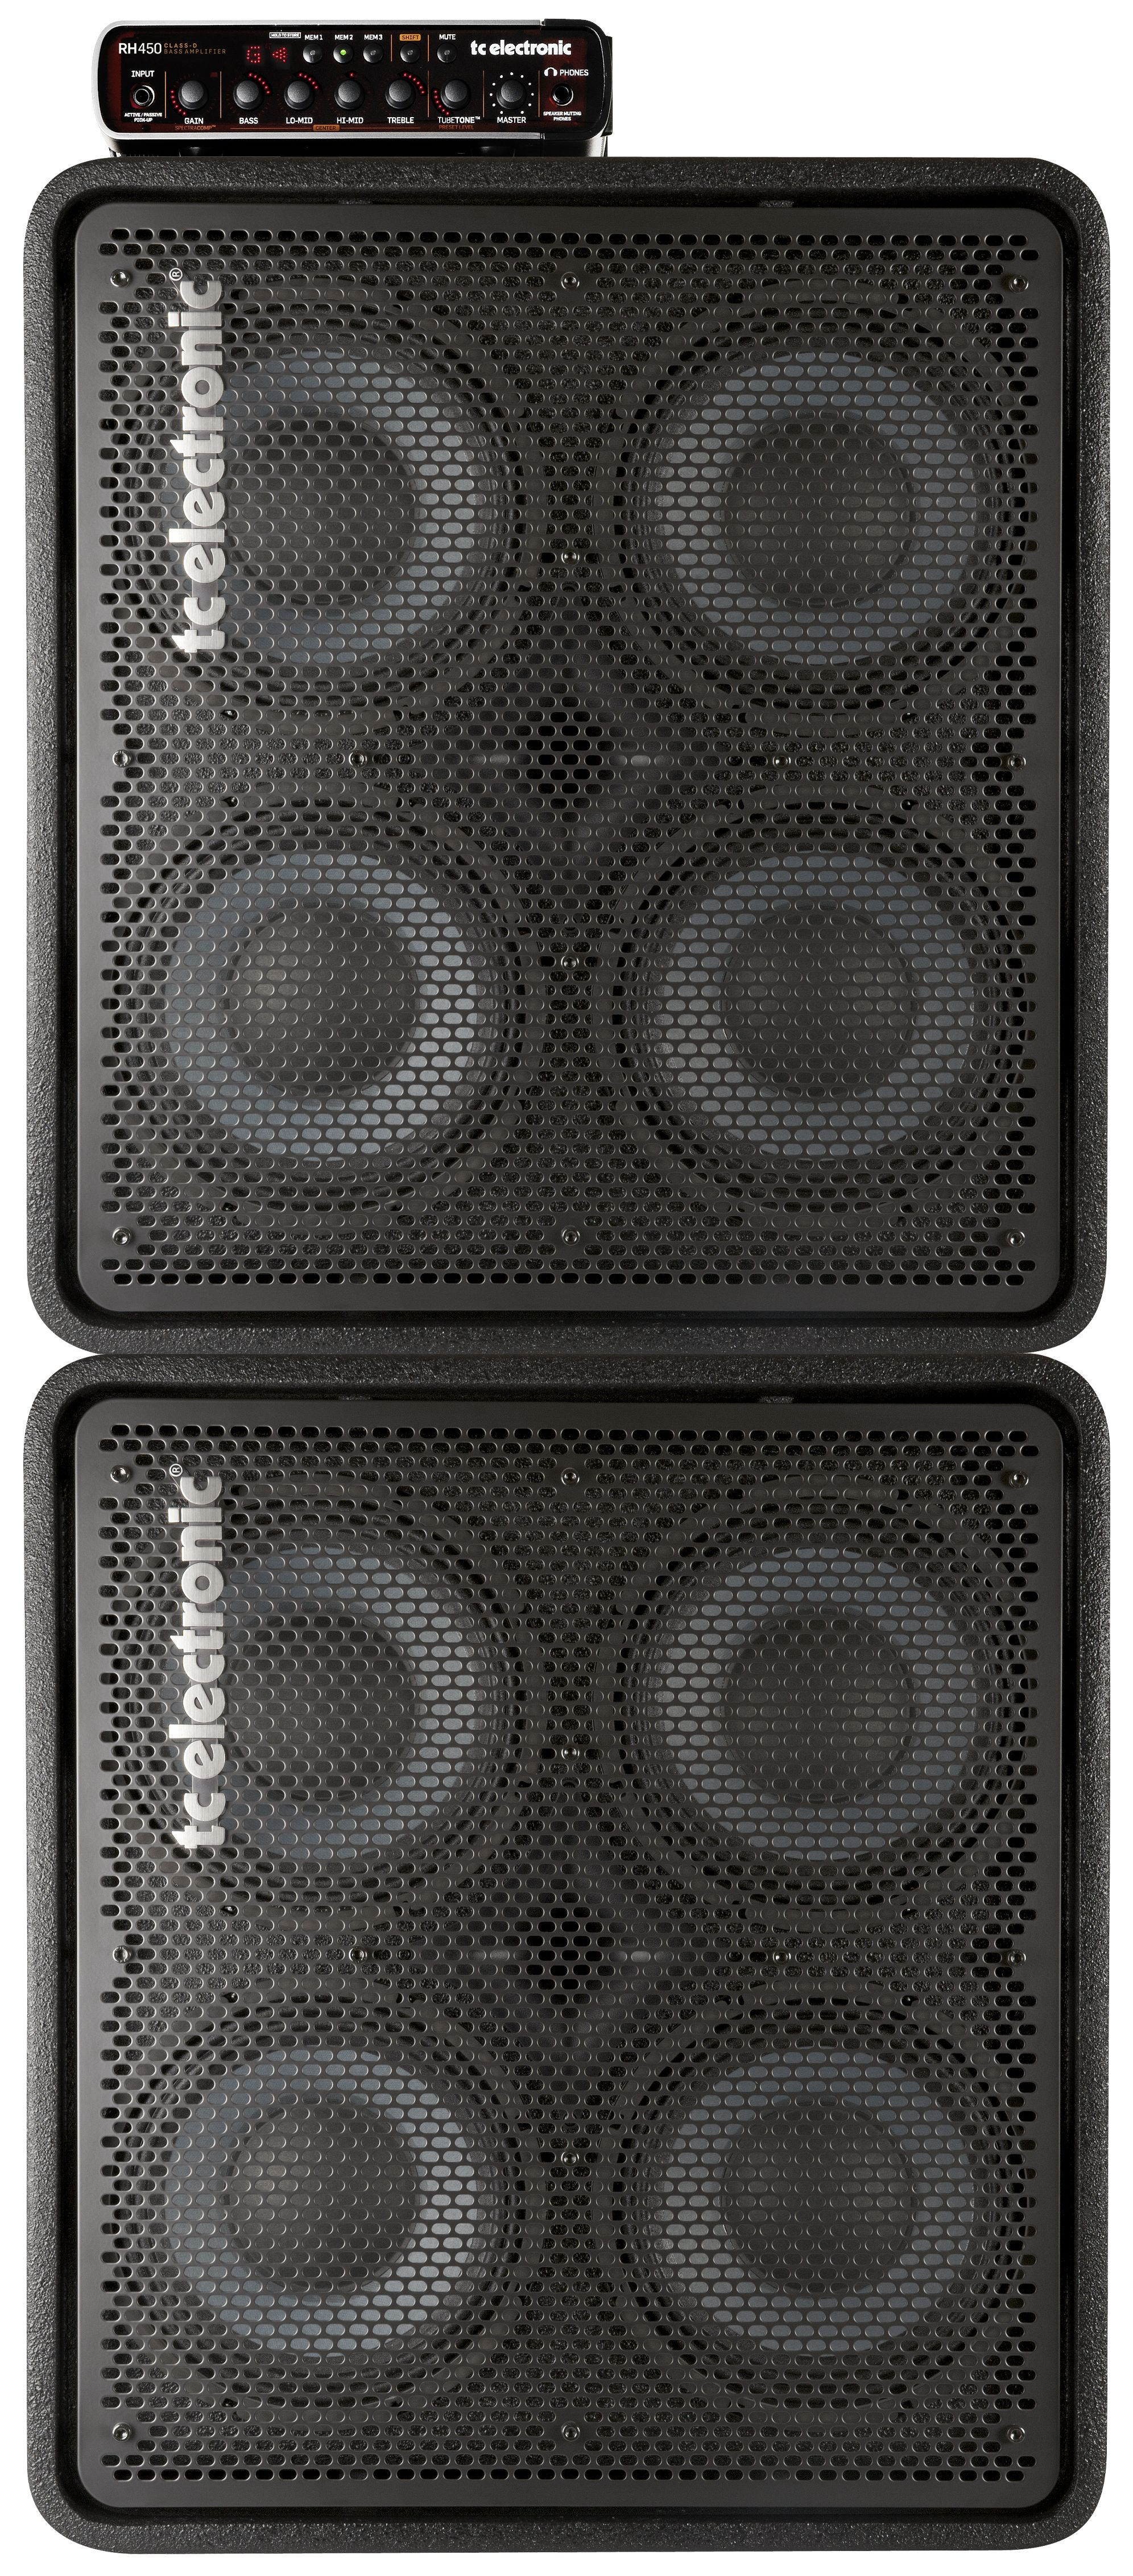 tc electronic rh450 bass head rs410 cabinets full stack bass guitar guitar guitar amp bass. Black Bedroom Furniture Sets. Home Design Ideas